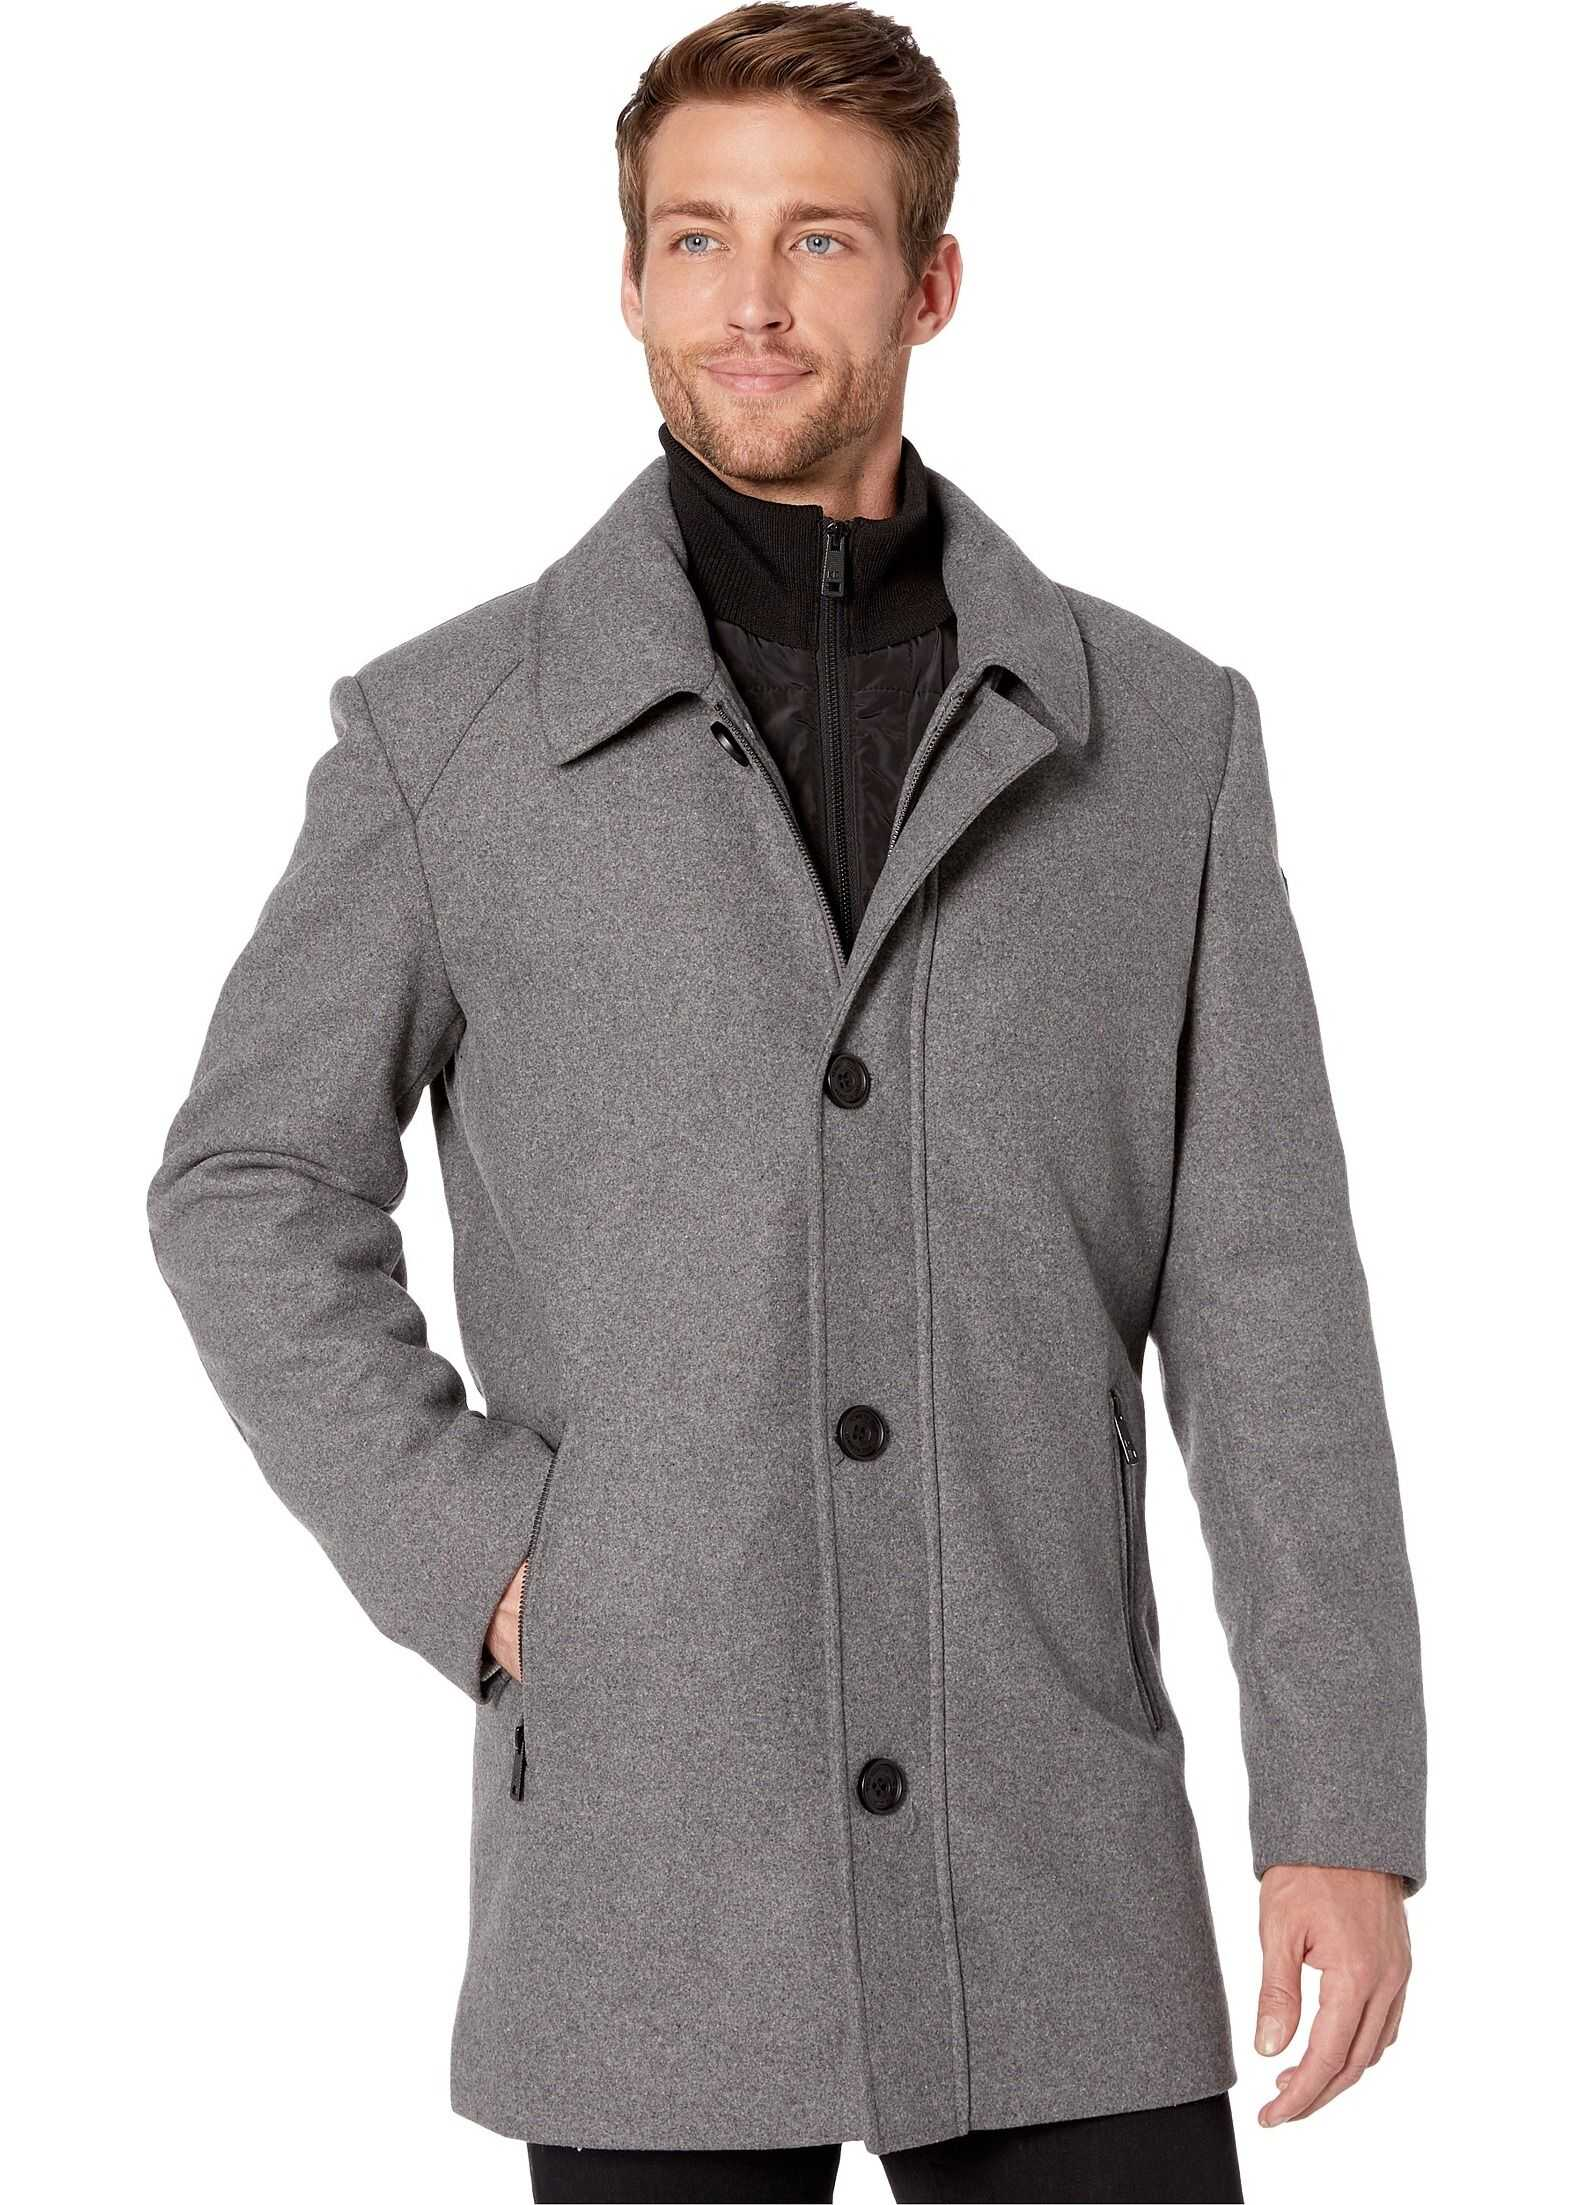 Kenneth Cole New York Button Front Wool Jacket w/ Knit Collar Light Grey